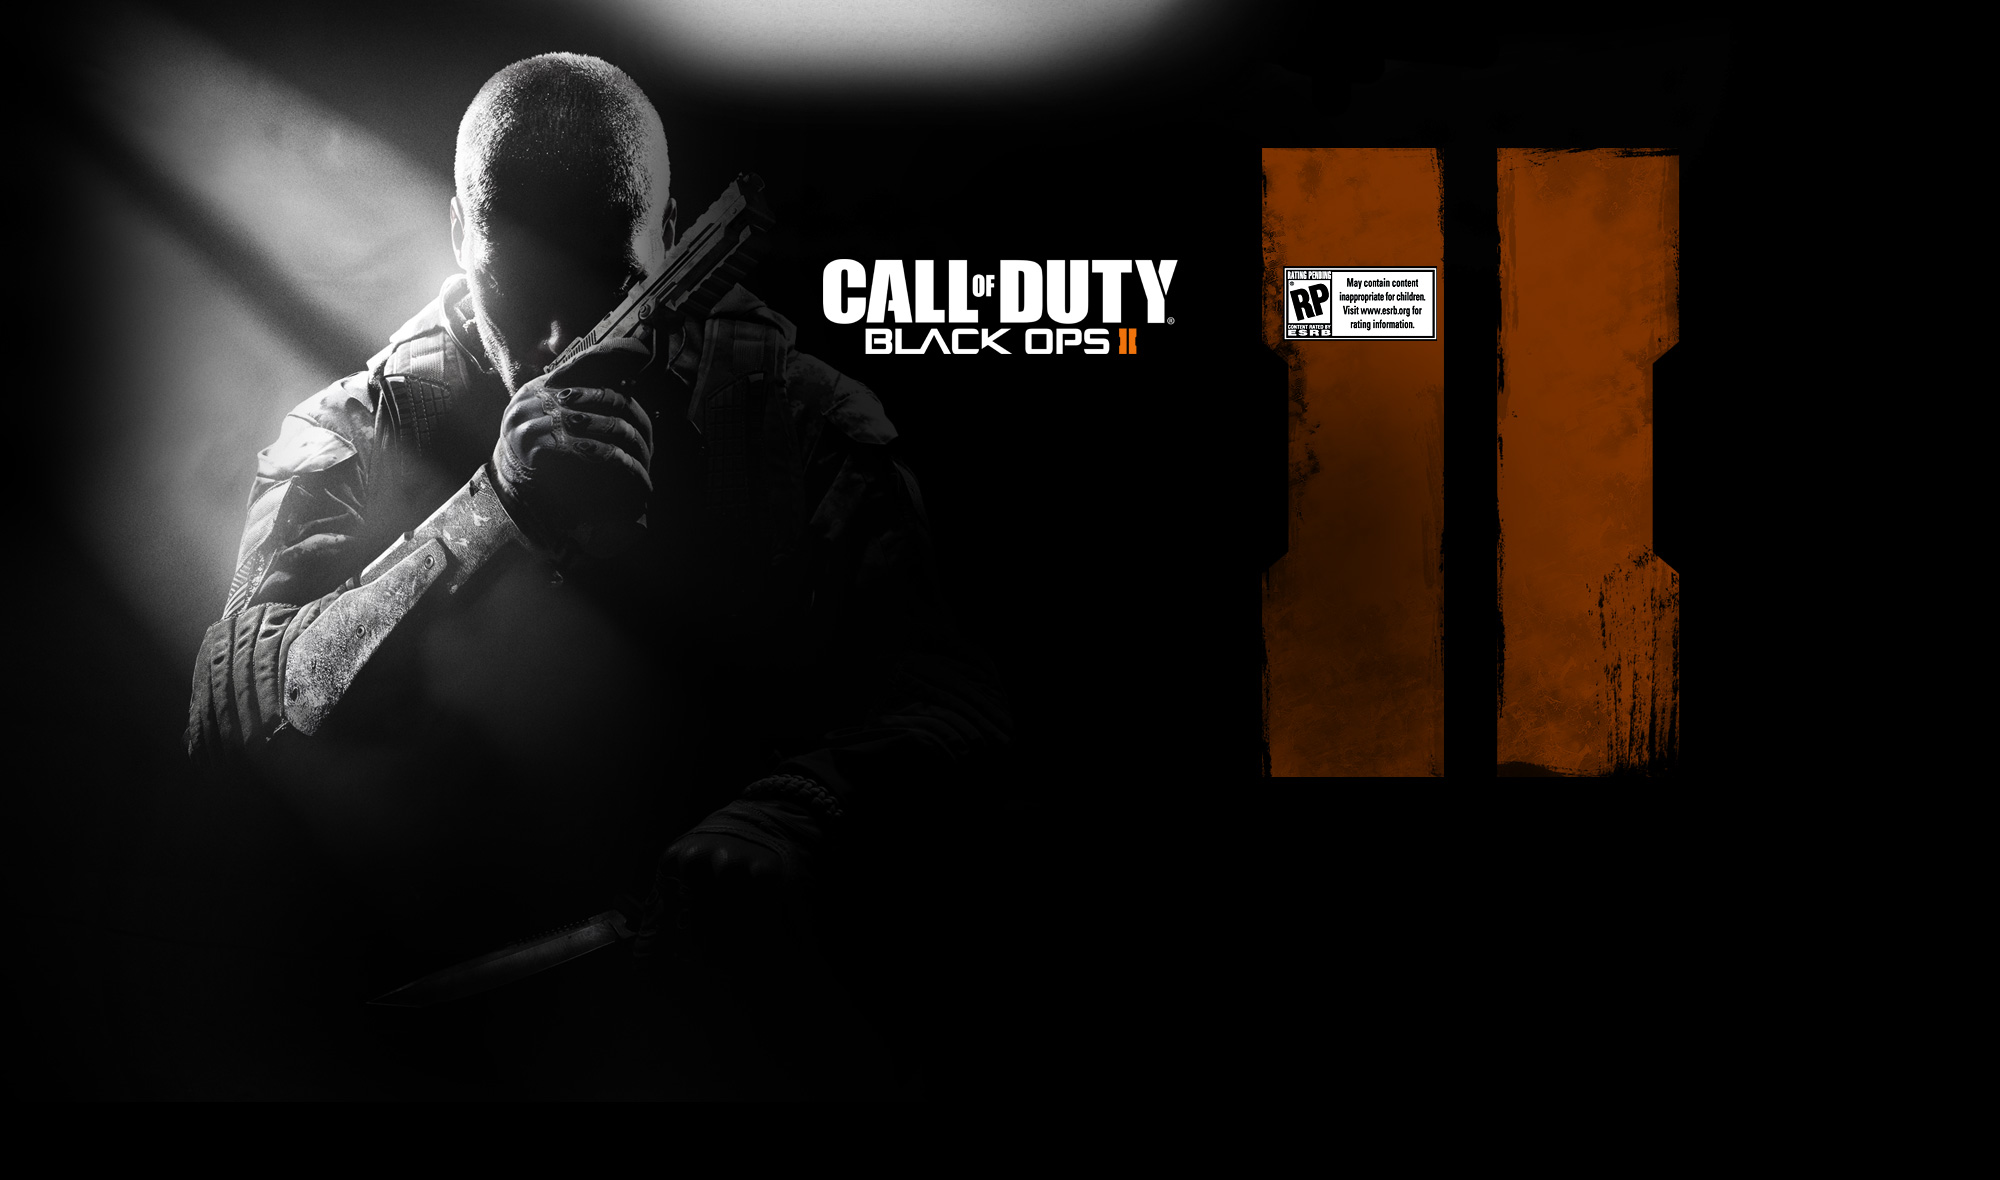 Call Of Duty Black Ops Ii Wallpapers Pictures Images